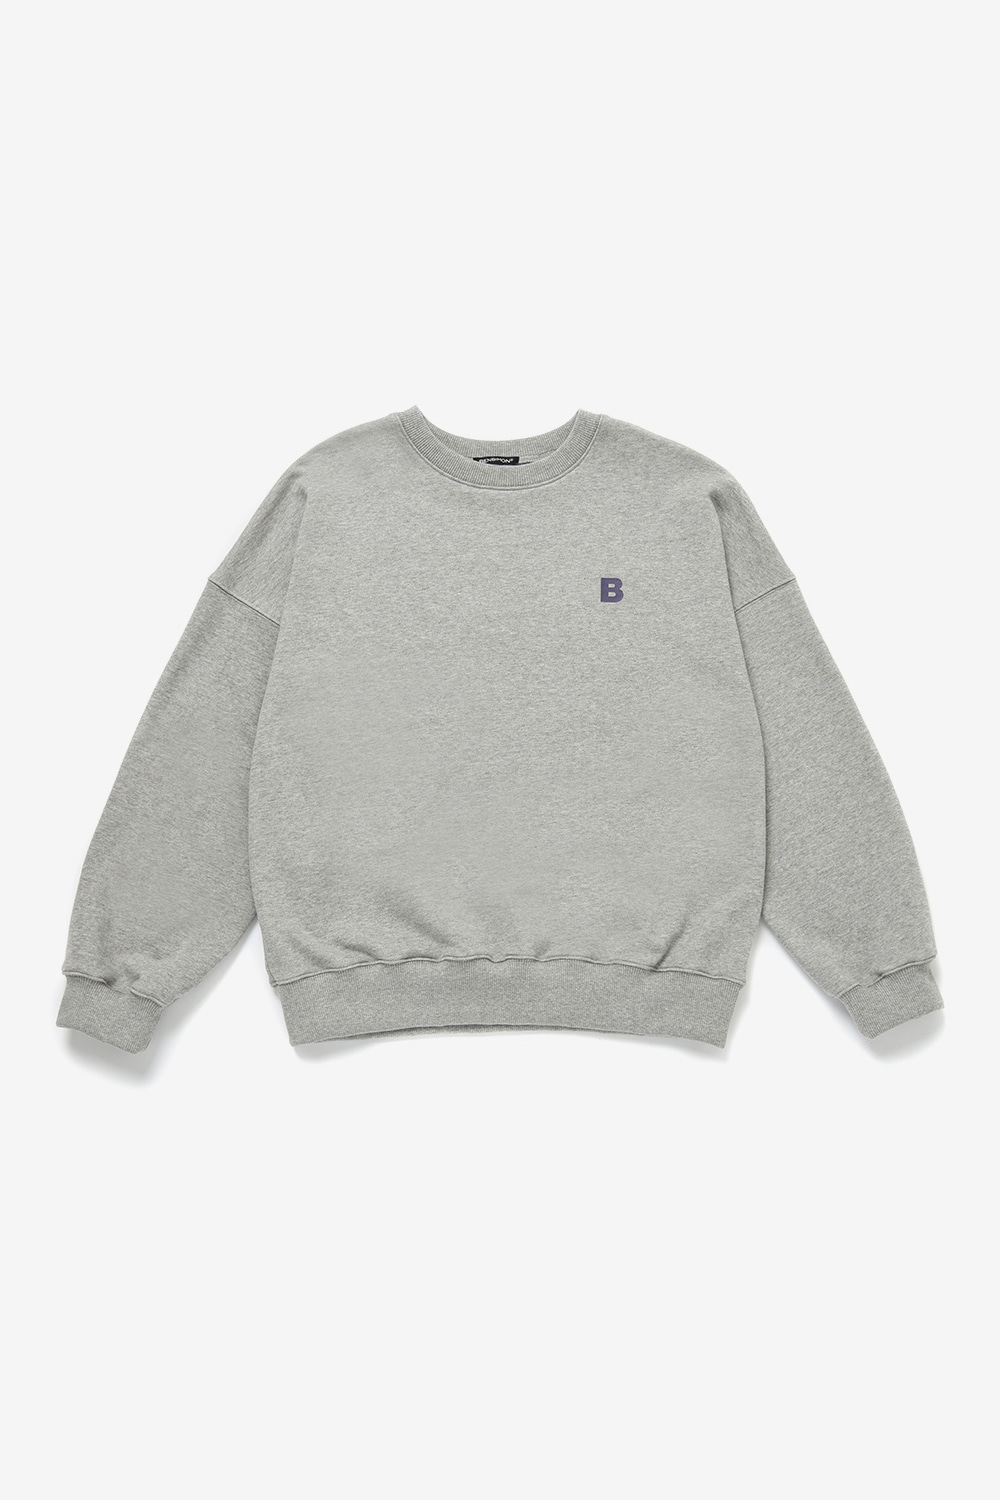 B Logo Over MTM(unisex)_Grey BS0SMT207GR00F